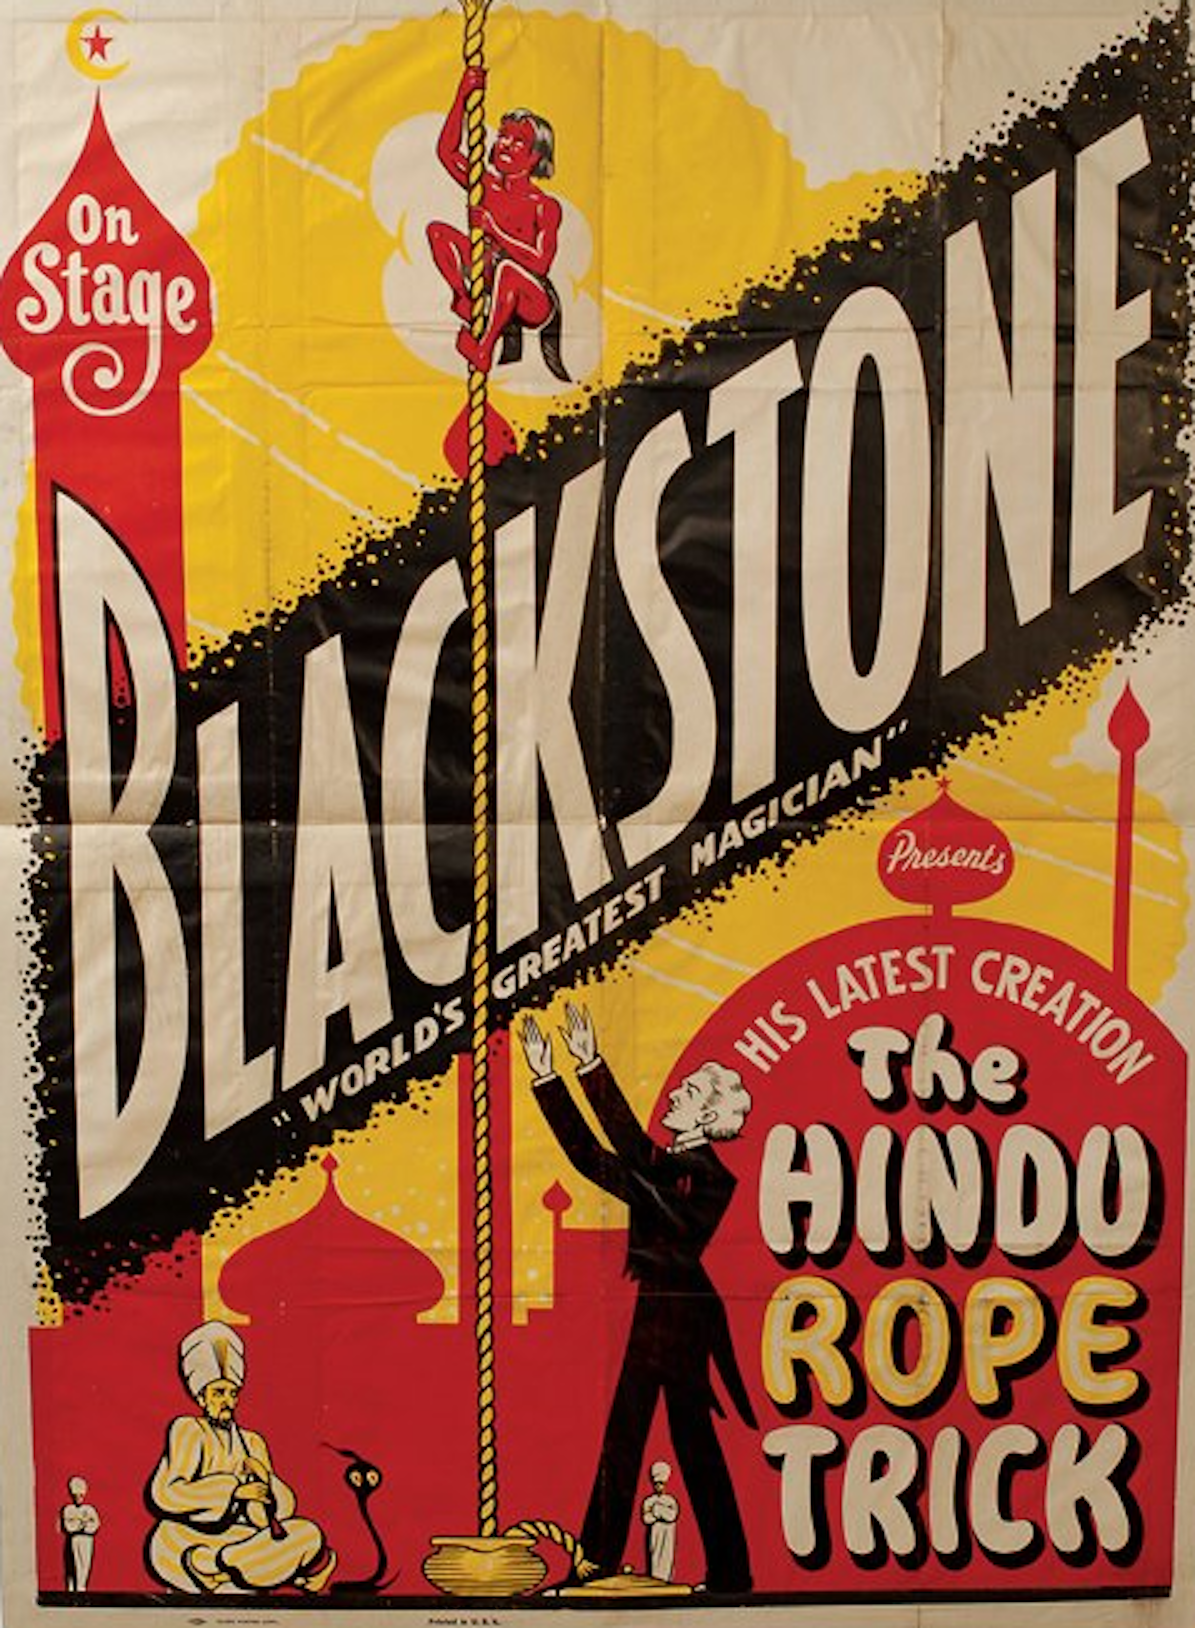 By the 1920s the Rope Trick was on the programme of many of the world's leading magicians including Harry Blackstone | Wikimedia Commons.